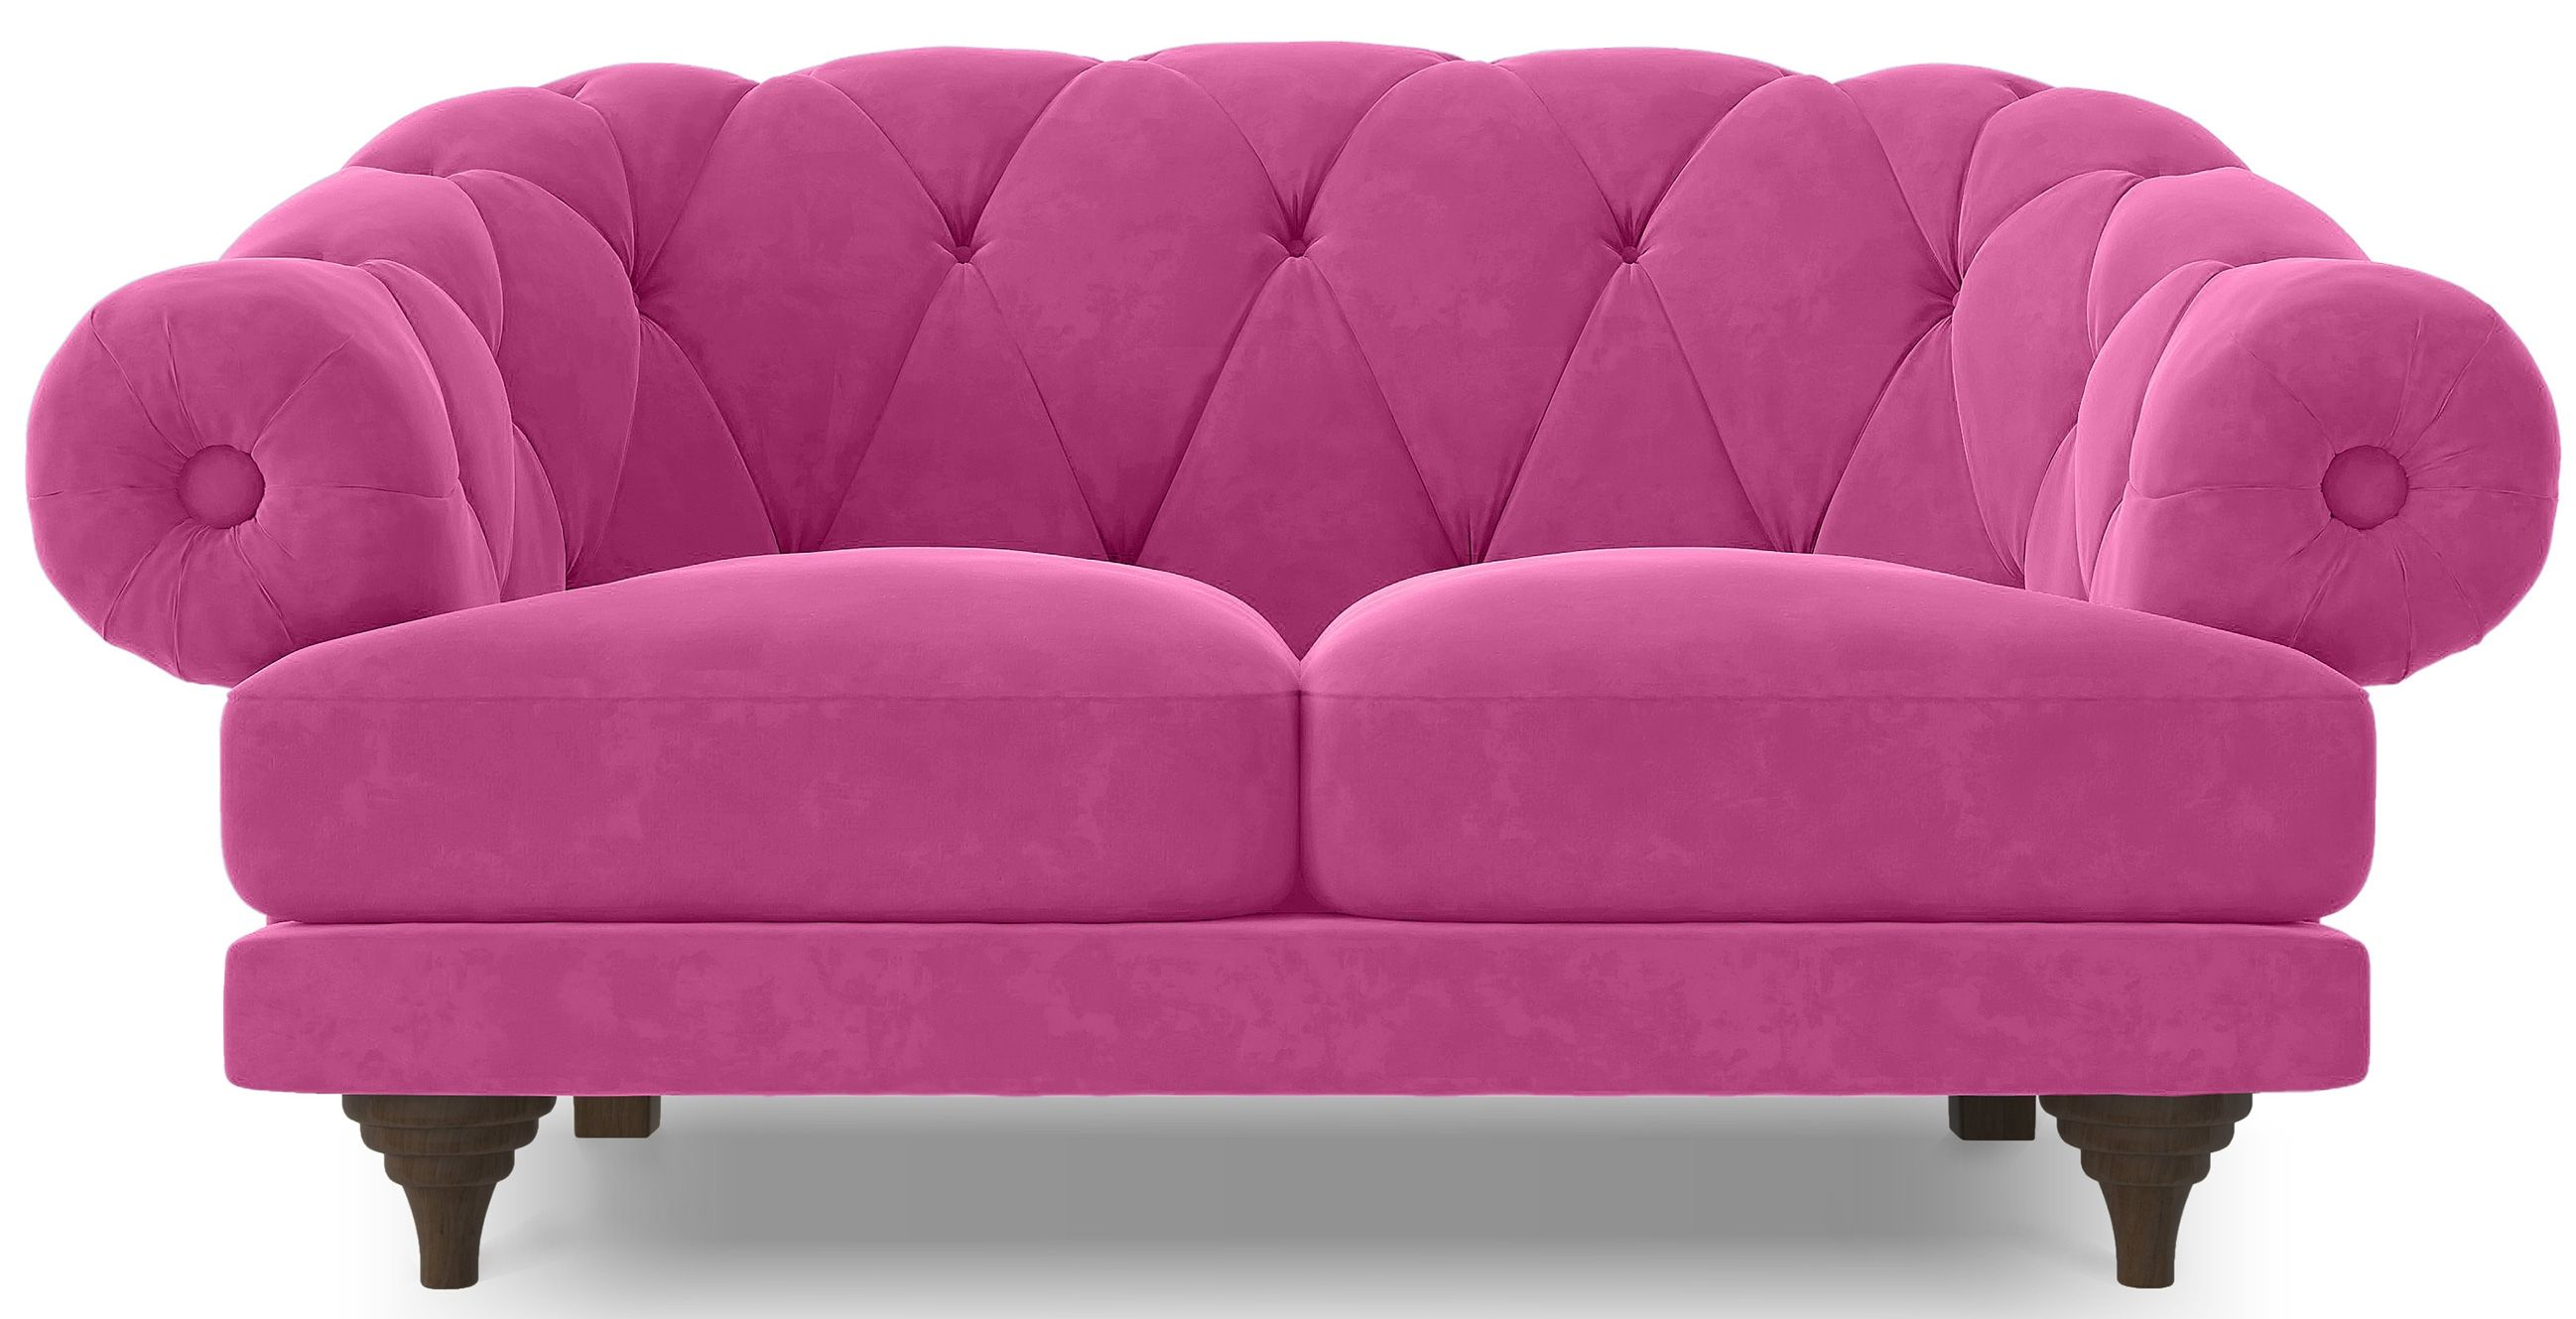 canap ultra confortable velours rose chesterfield canape tissu pinterest. Black Bedroom Furniture Sets. Home Design Ideas